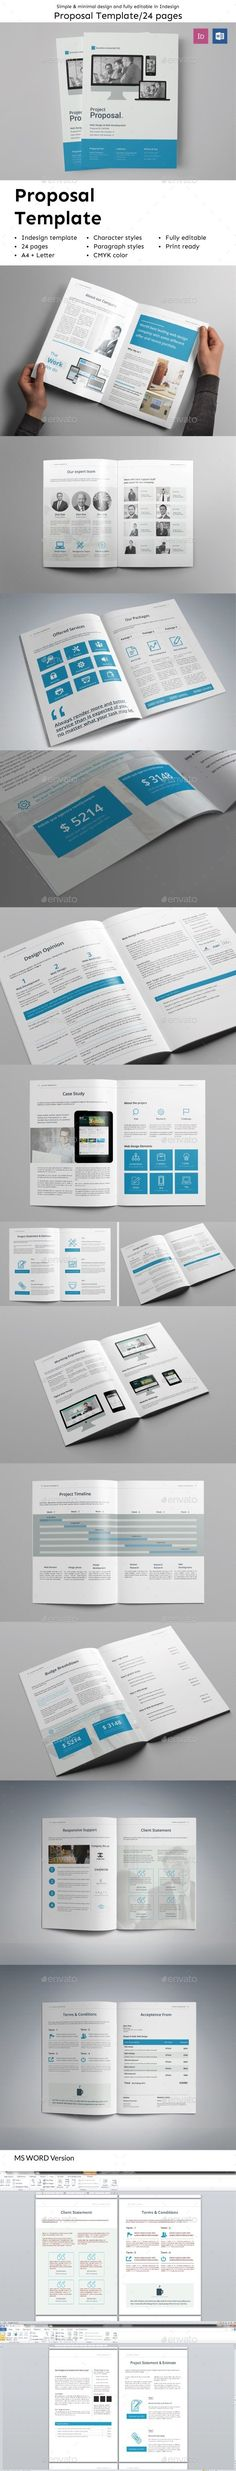 Web Proposal Template | Proposals, Graphics And Stationery